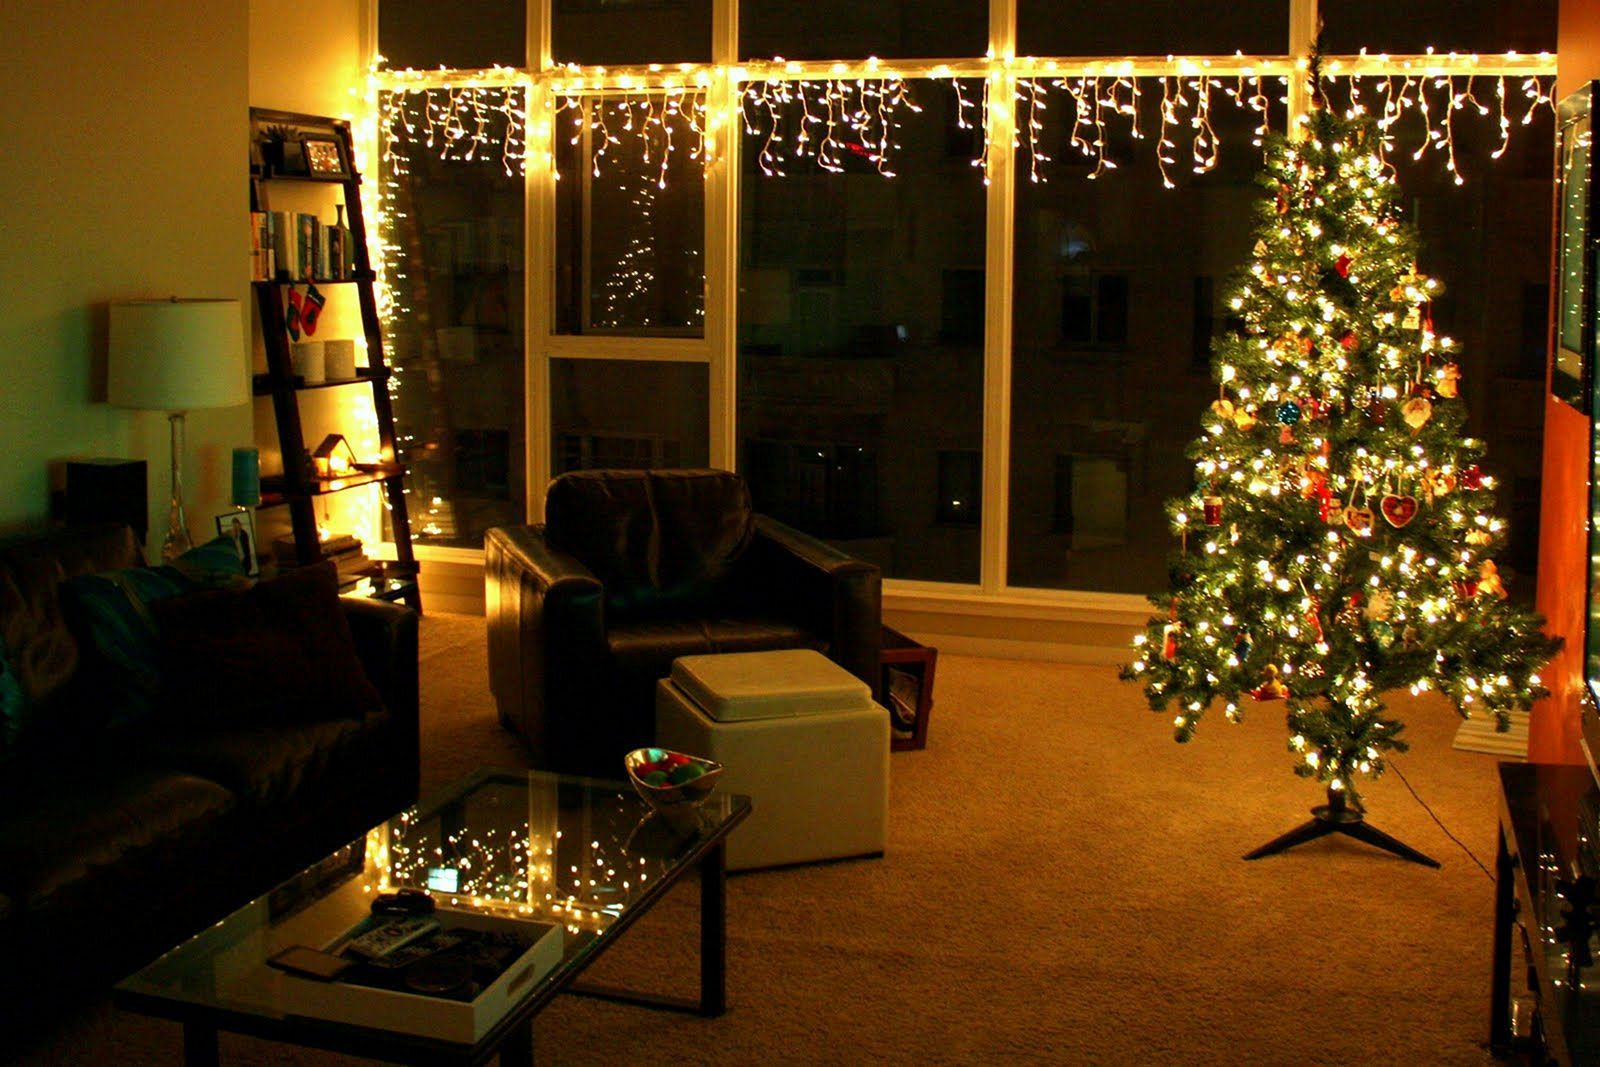 40 + Stunning Christmas Light Ideas for Your Awesome Living